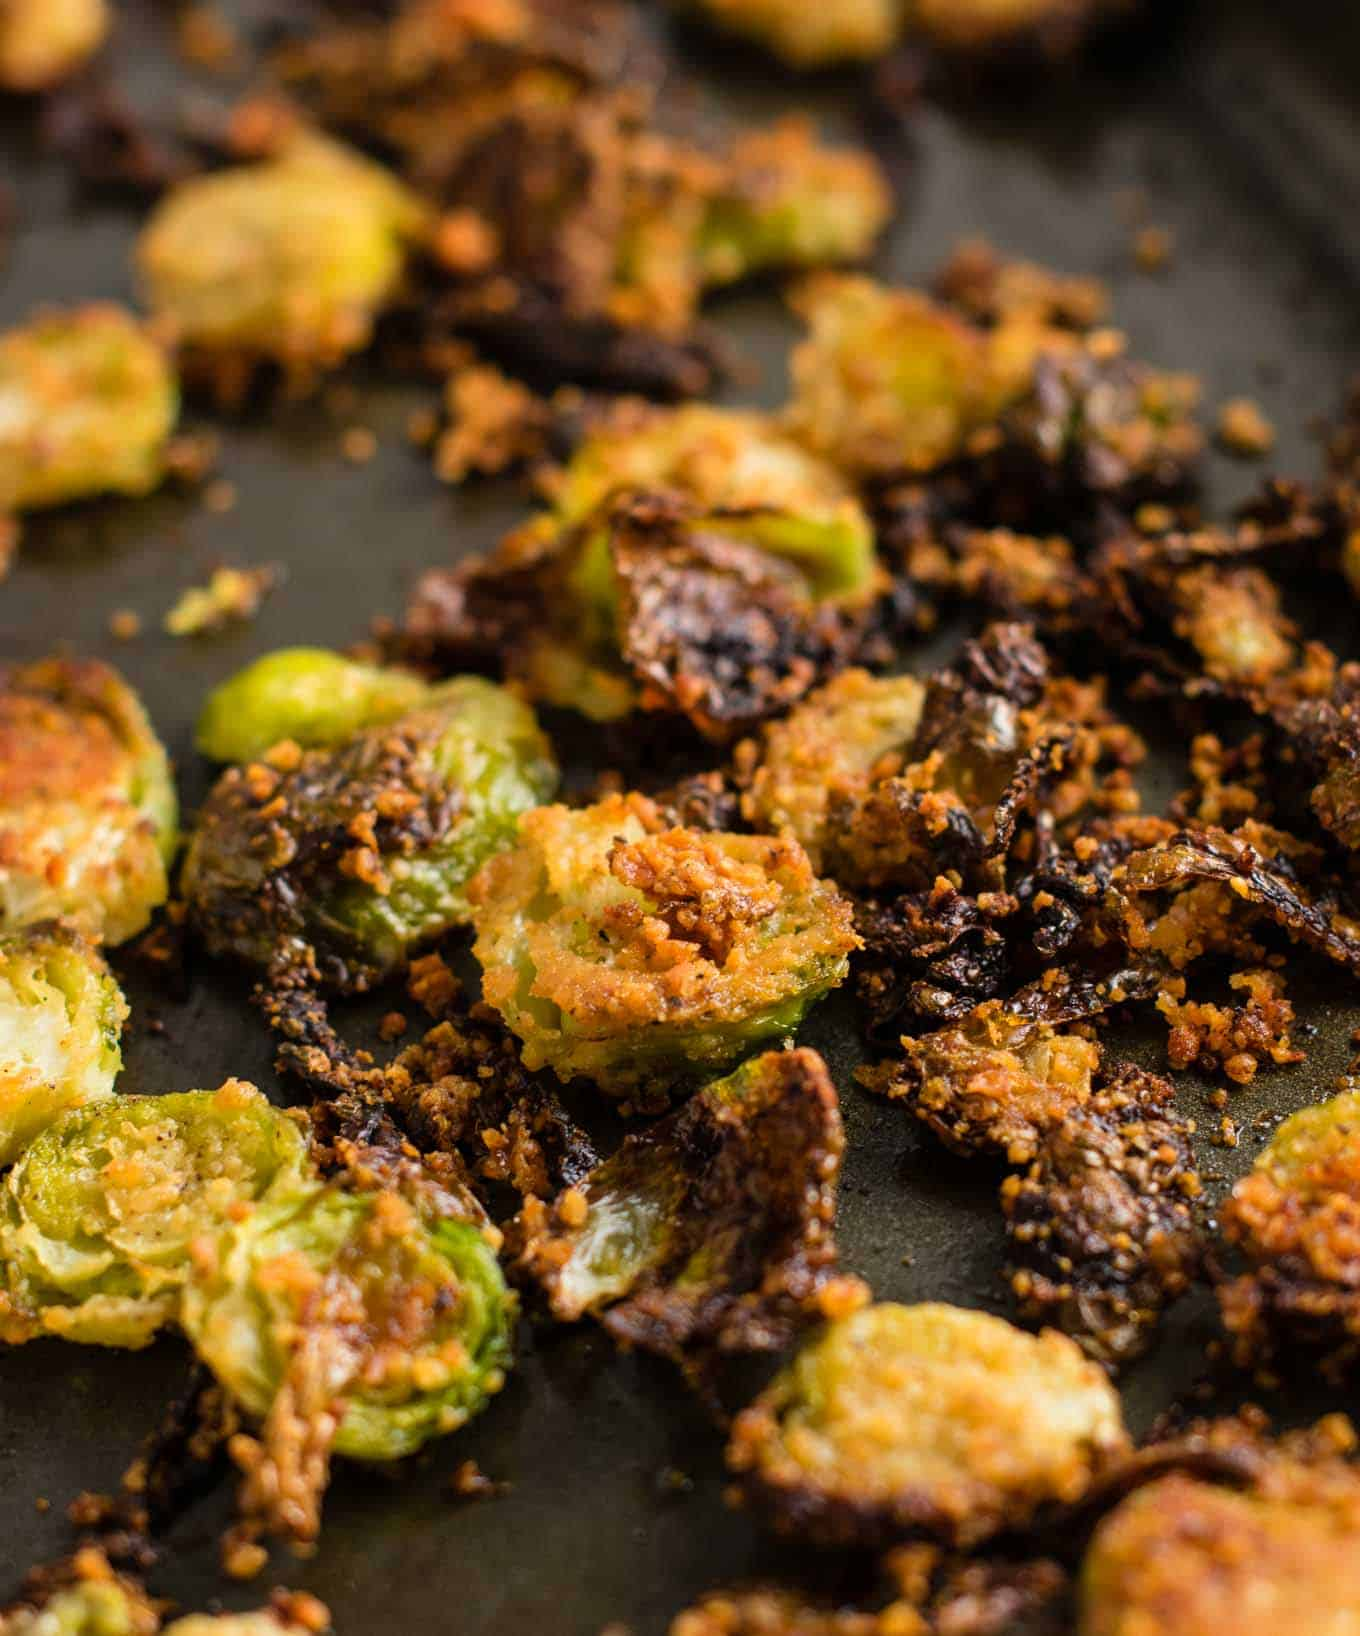 brussels sprouts chips Roasted Brussel sprout chips - these are so good I could eat the whole pan myself! #brusselsprouts #brusselsproutchips #dinner #sidedish #vegetarian